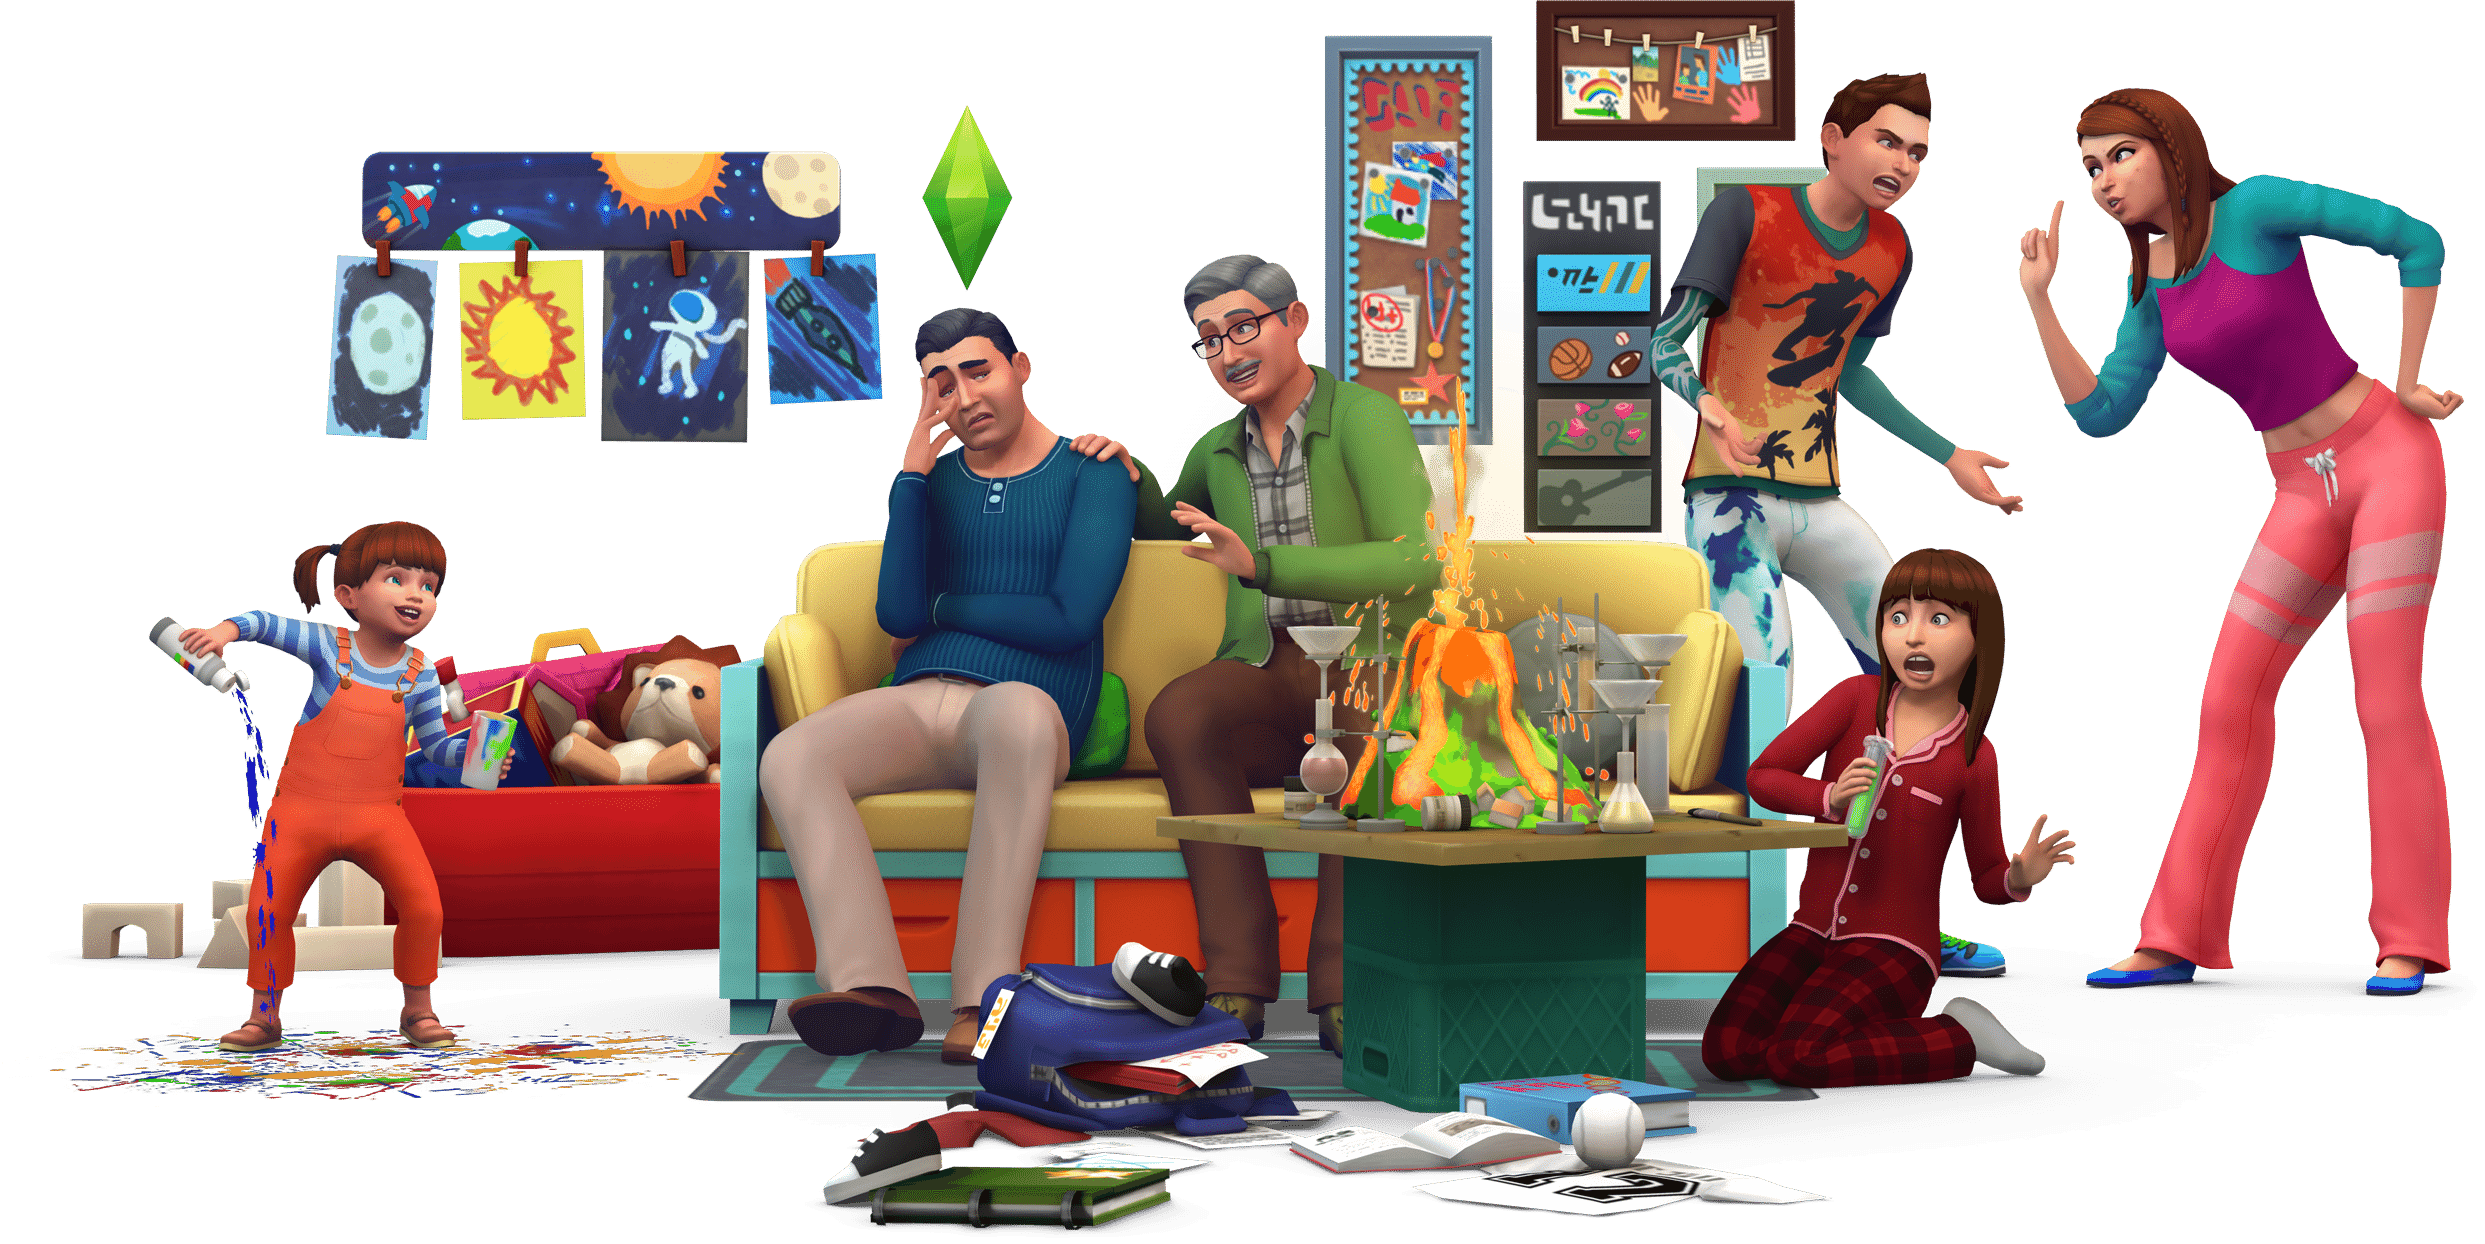 sims 4 cheerful trait png